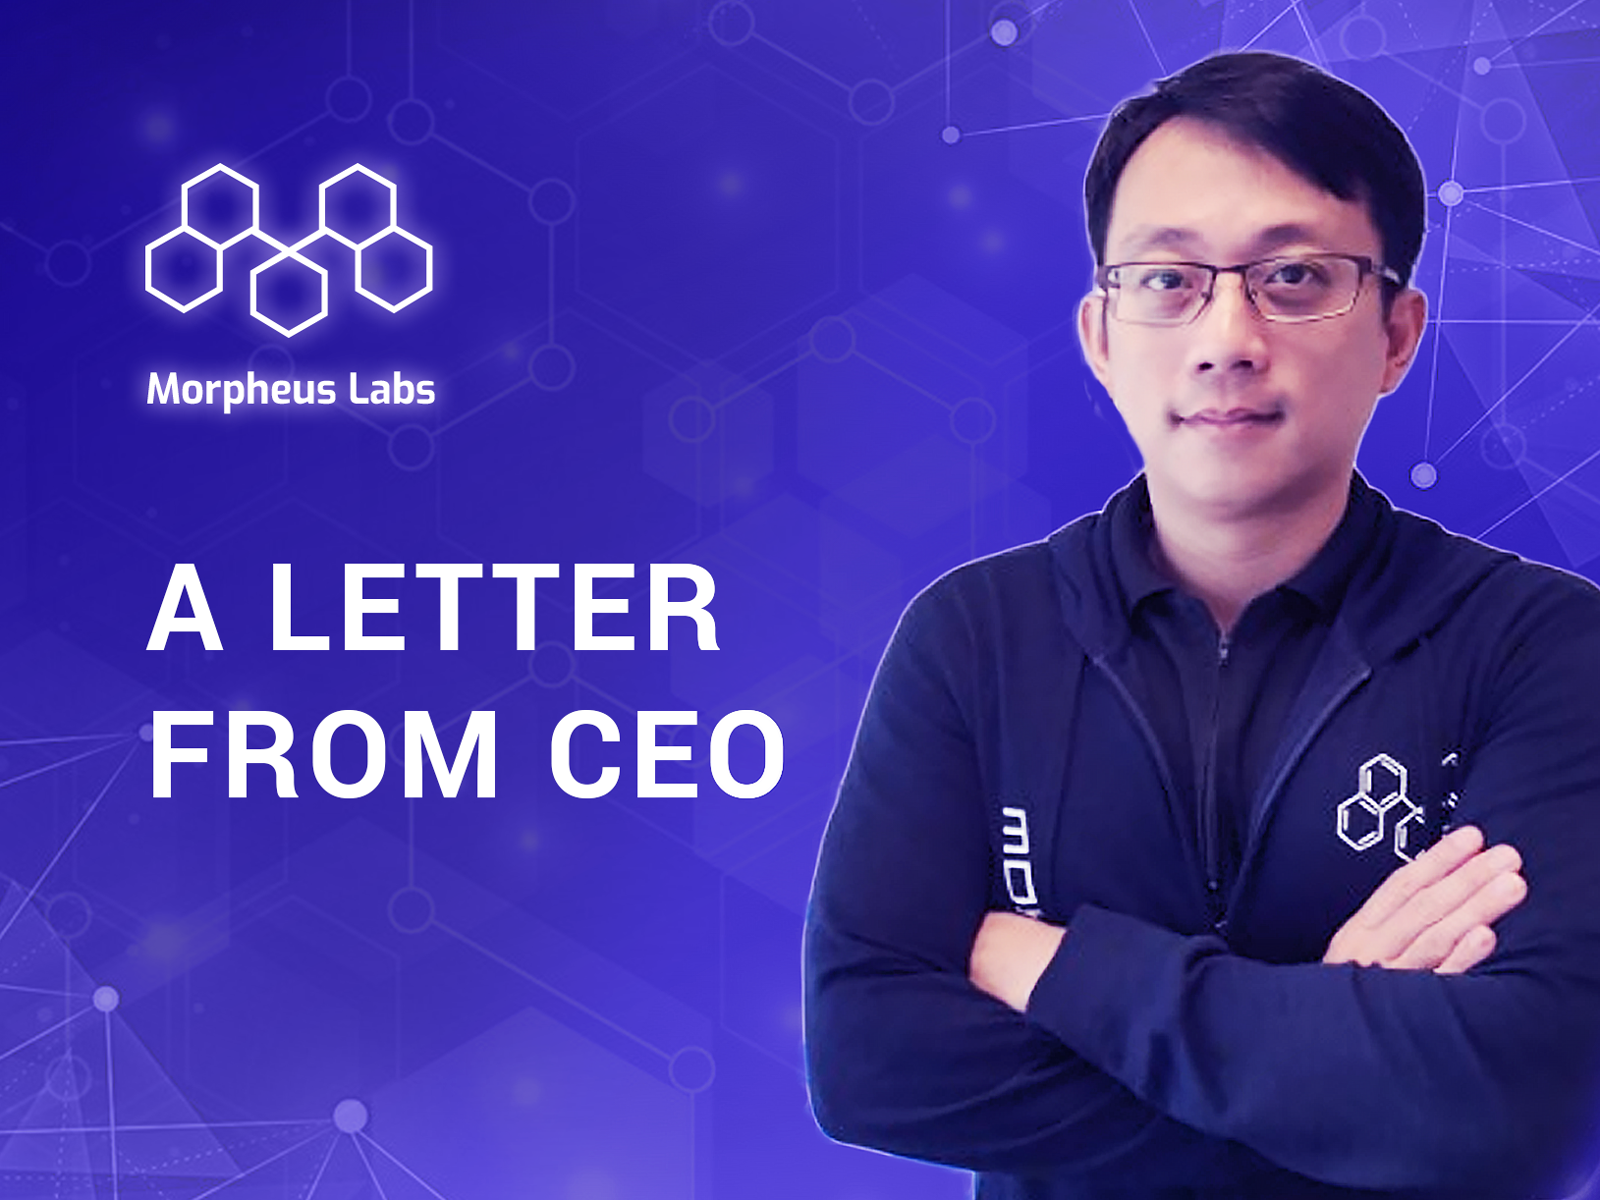 Morpheus Labs Move Forward Through Challenging Times